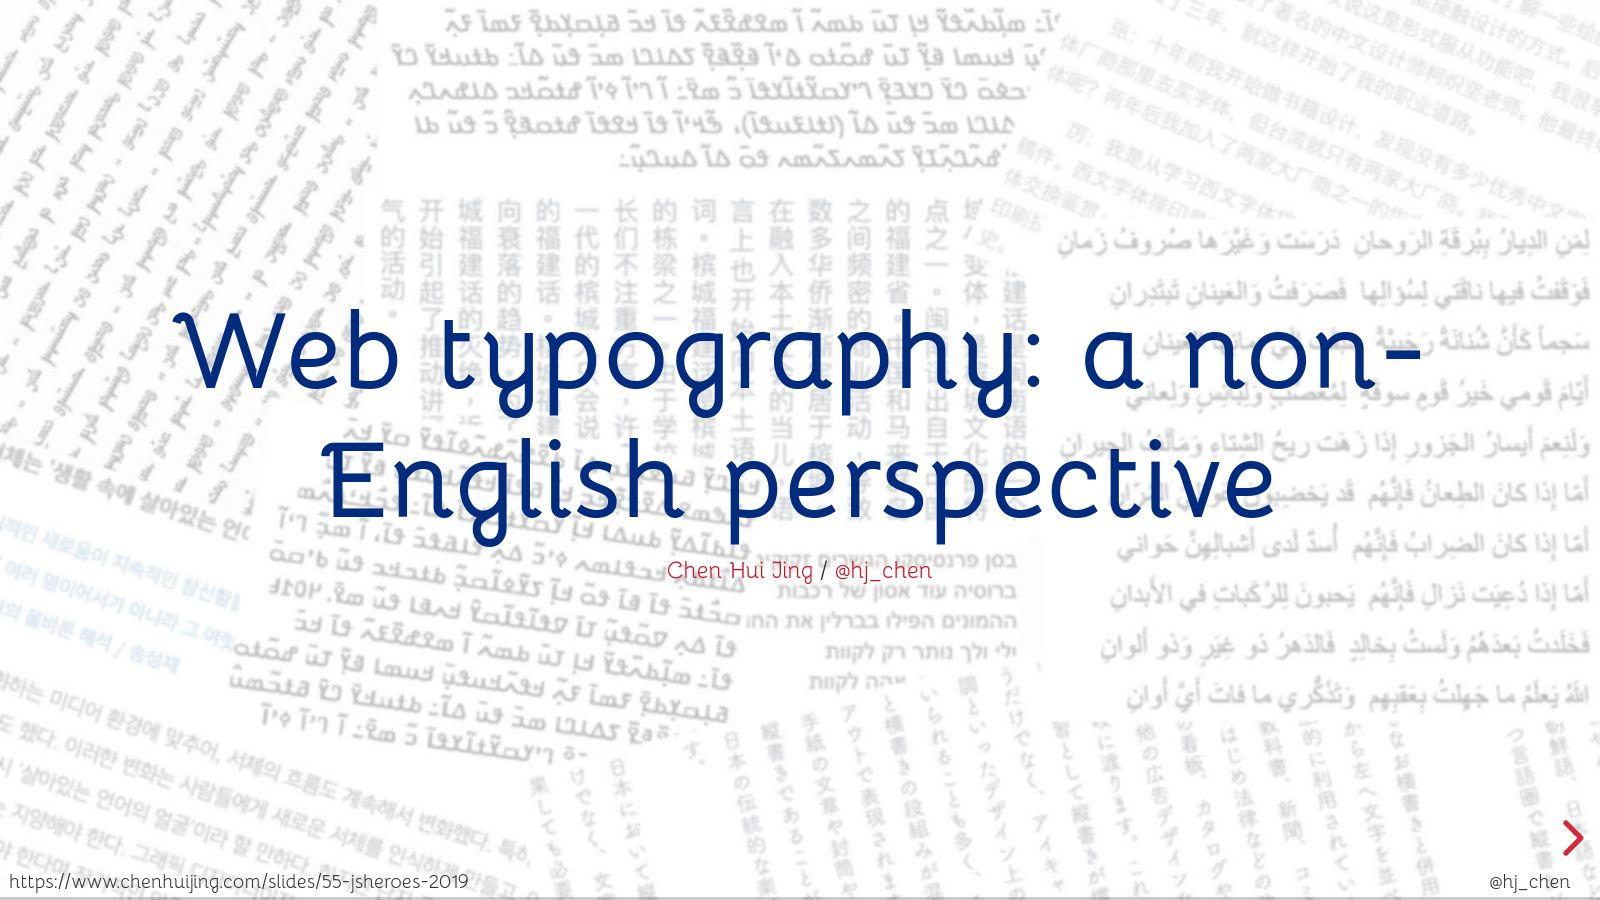 Web typography: a non-English perspective